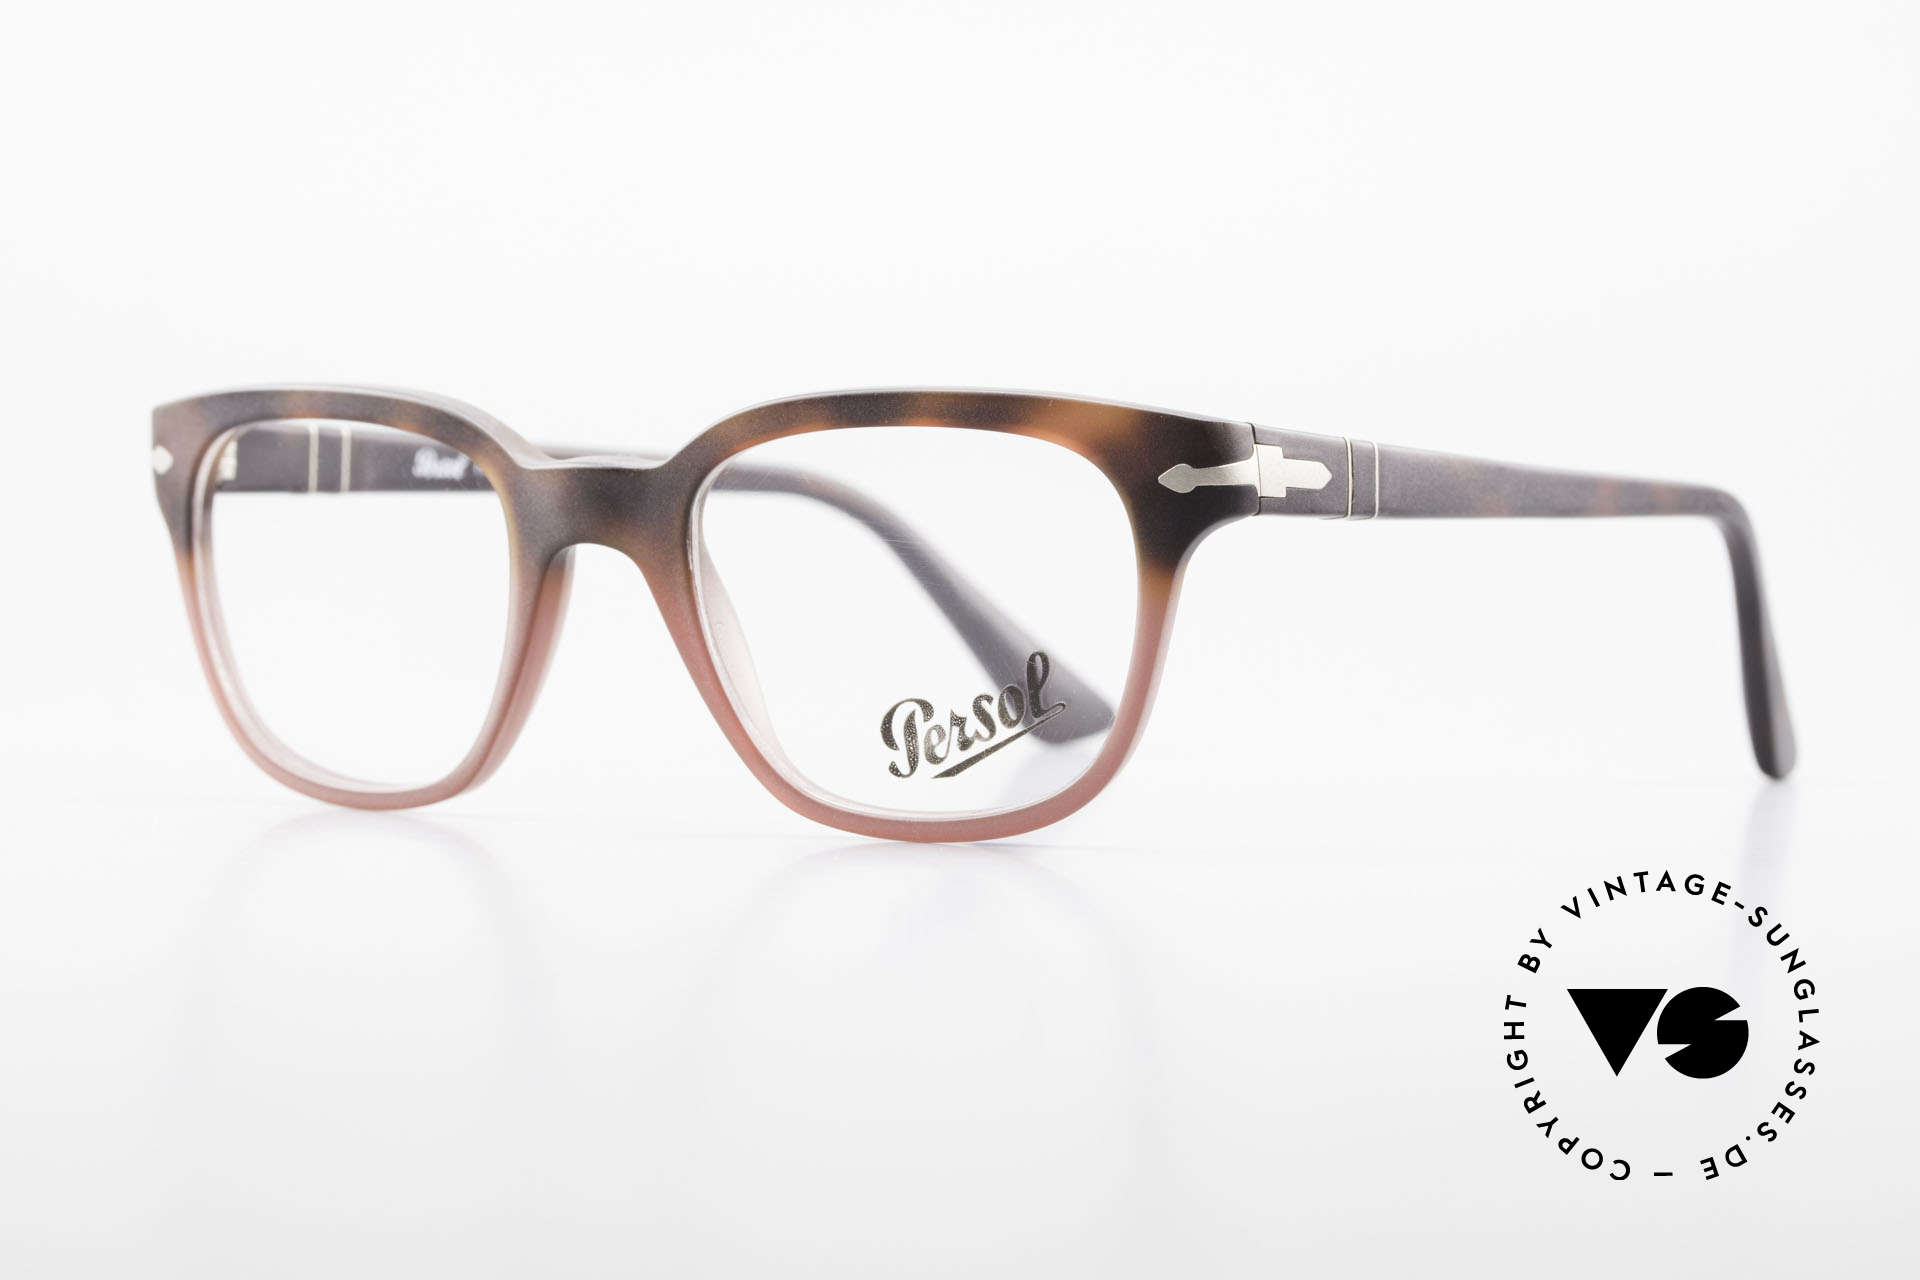 Persol 3093 Unisex Glasses Classic Frame, unworn (like all our classic PERSOL eyeglasses), Made for Men and Women